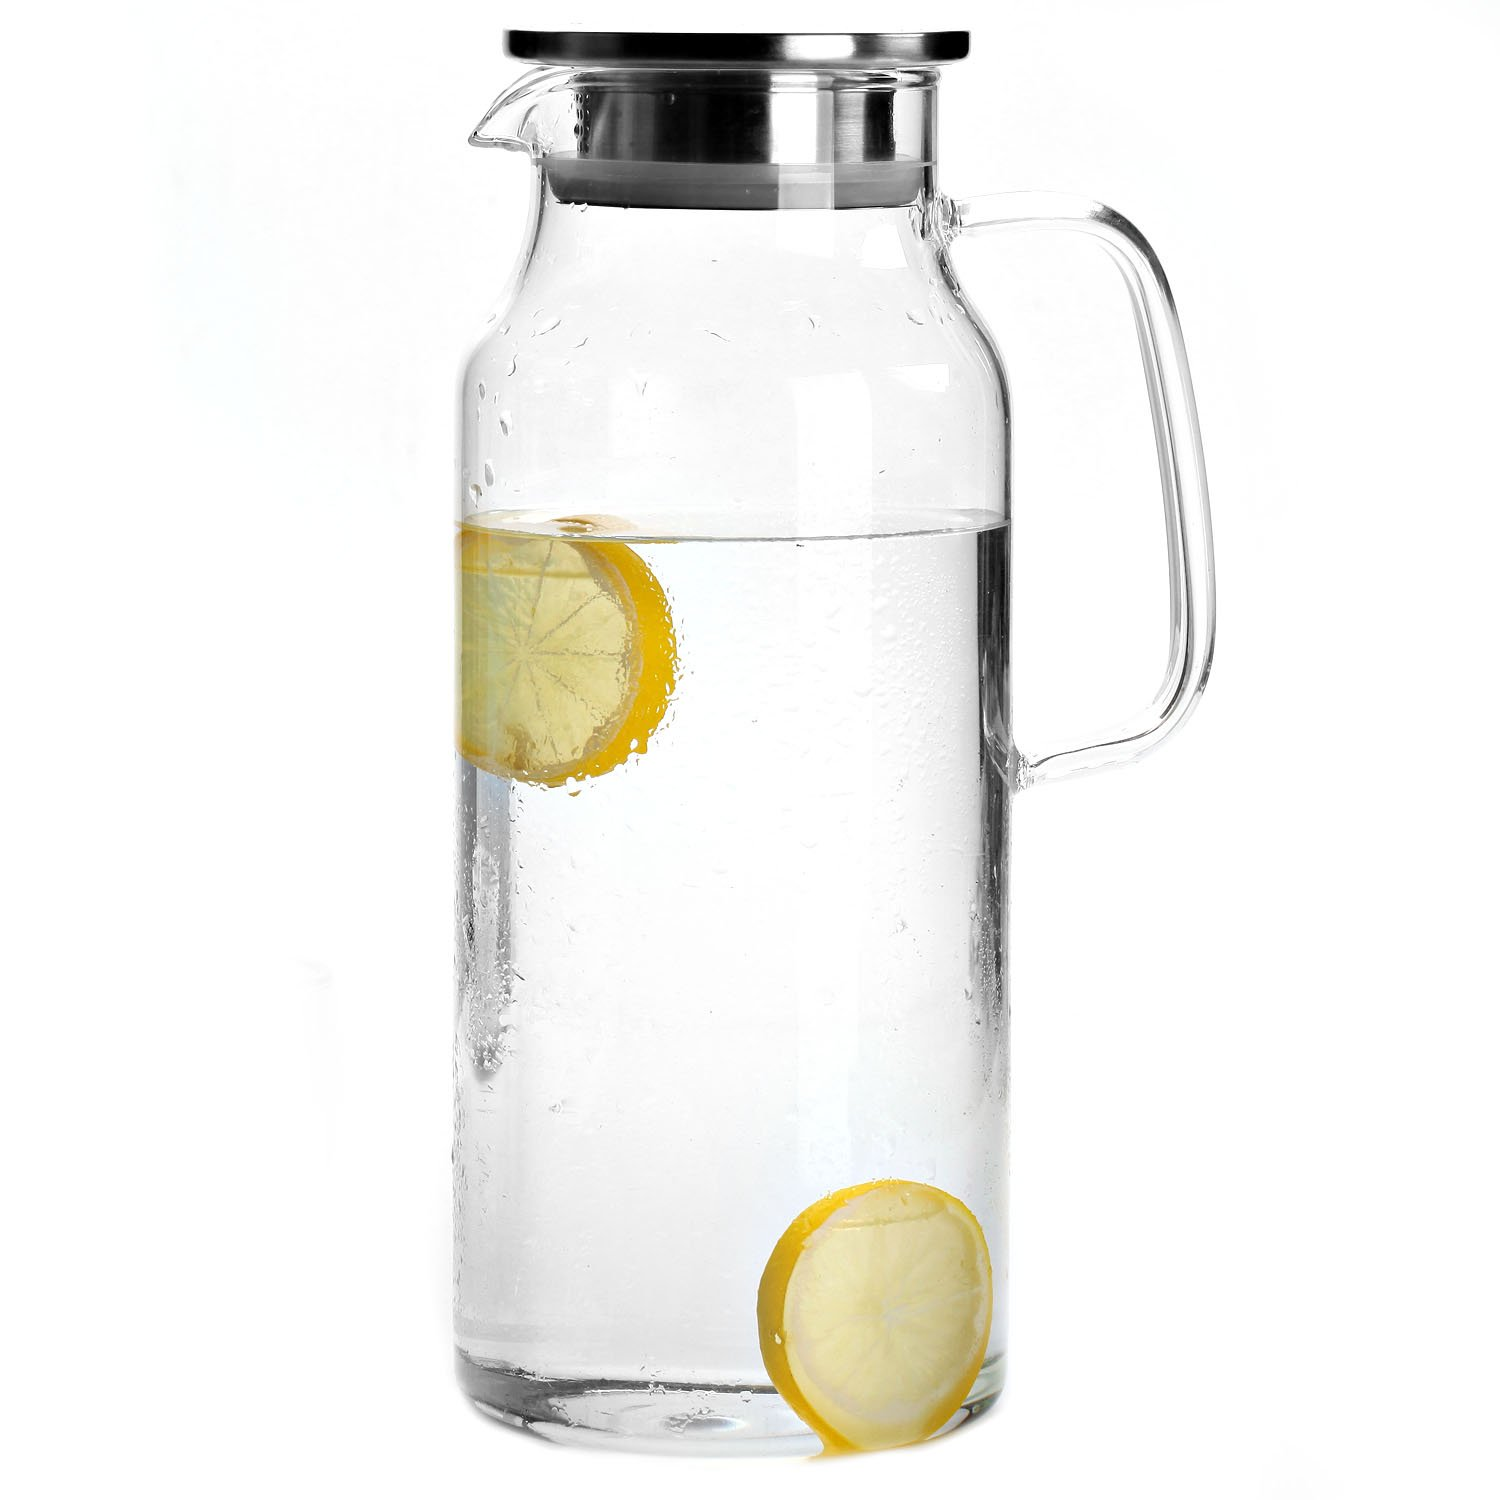 Cupwind 68 oz Borosilicate Glass Hot/Cold Water Carafe Tea Pitcher with Stainless Steel Infuser Lid